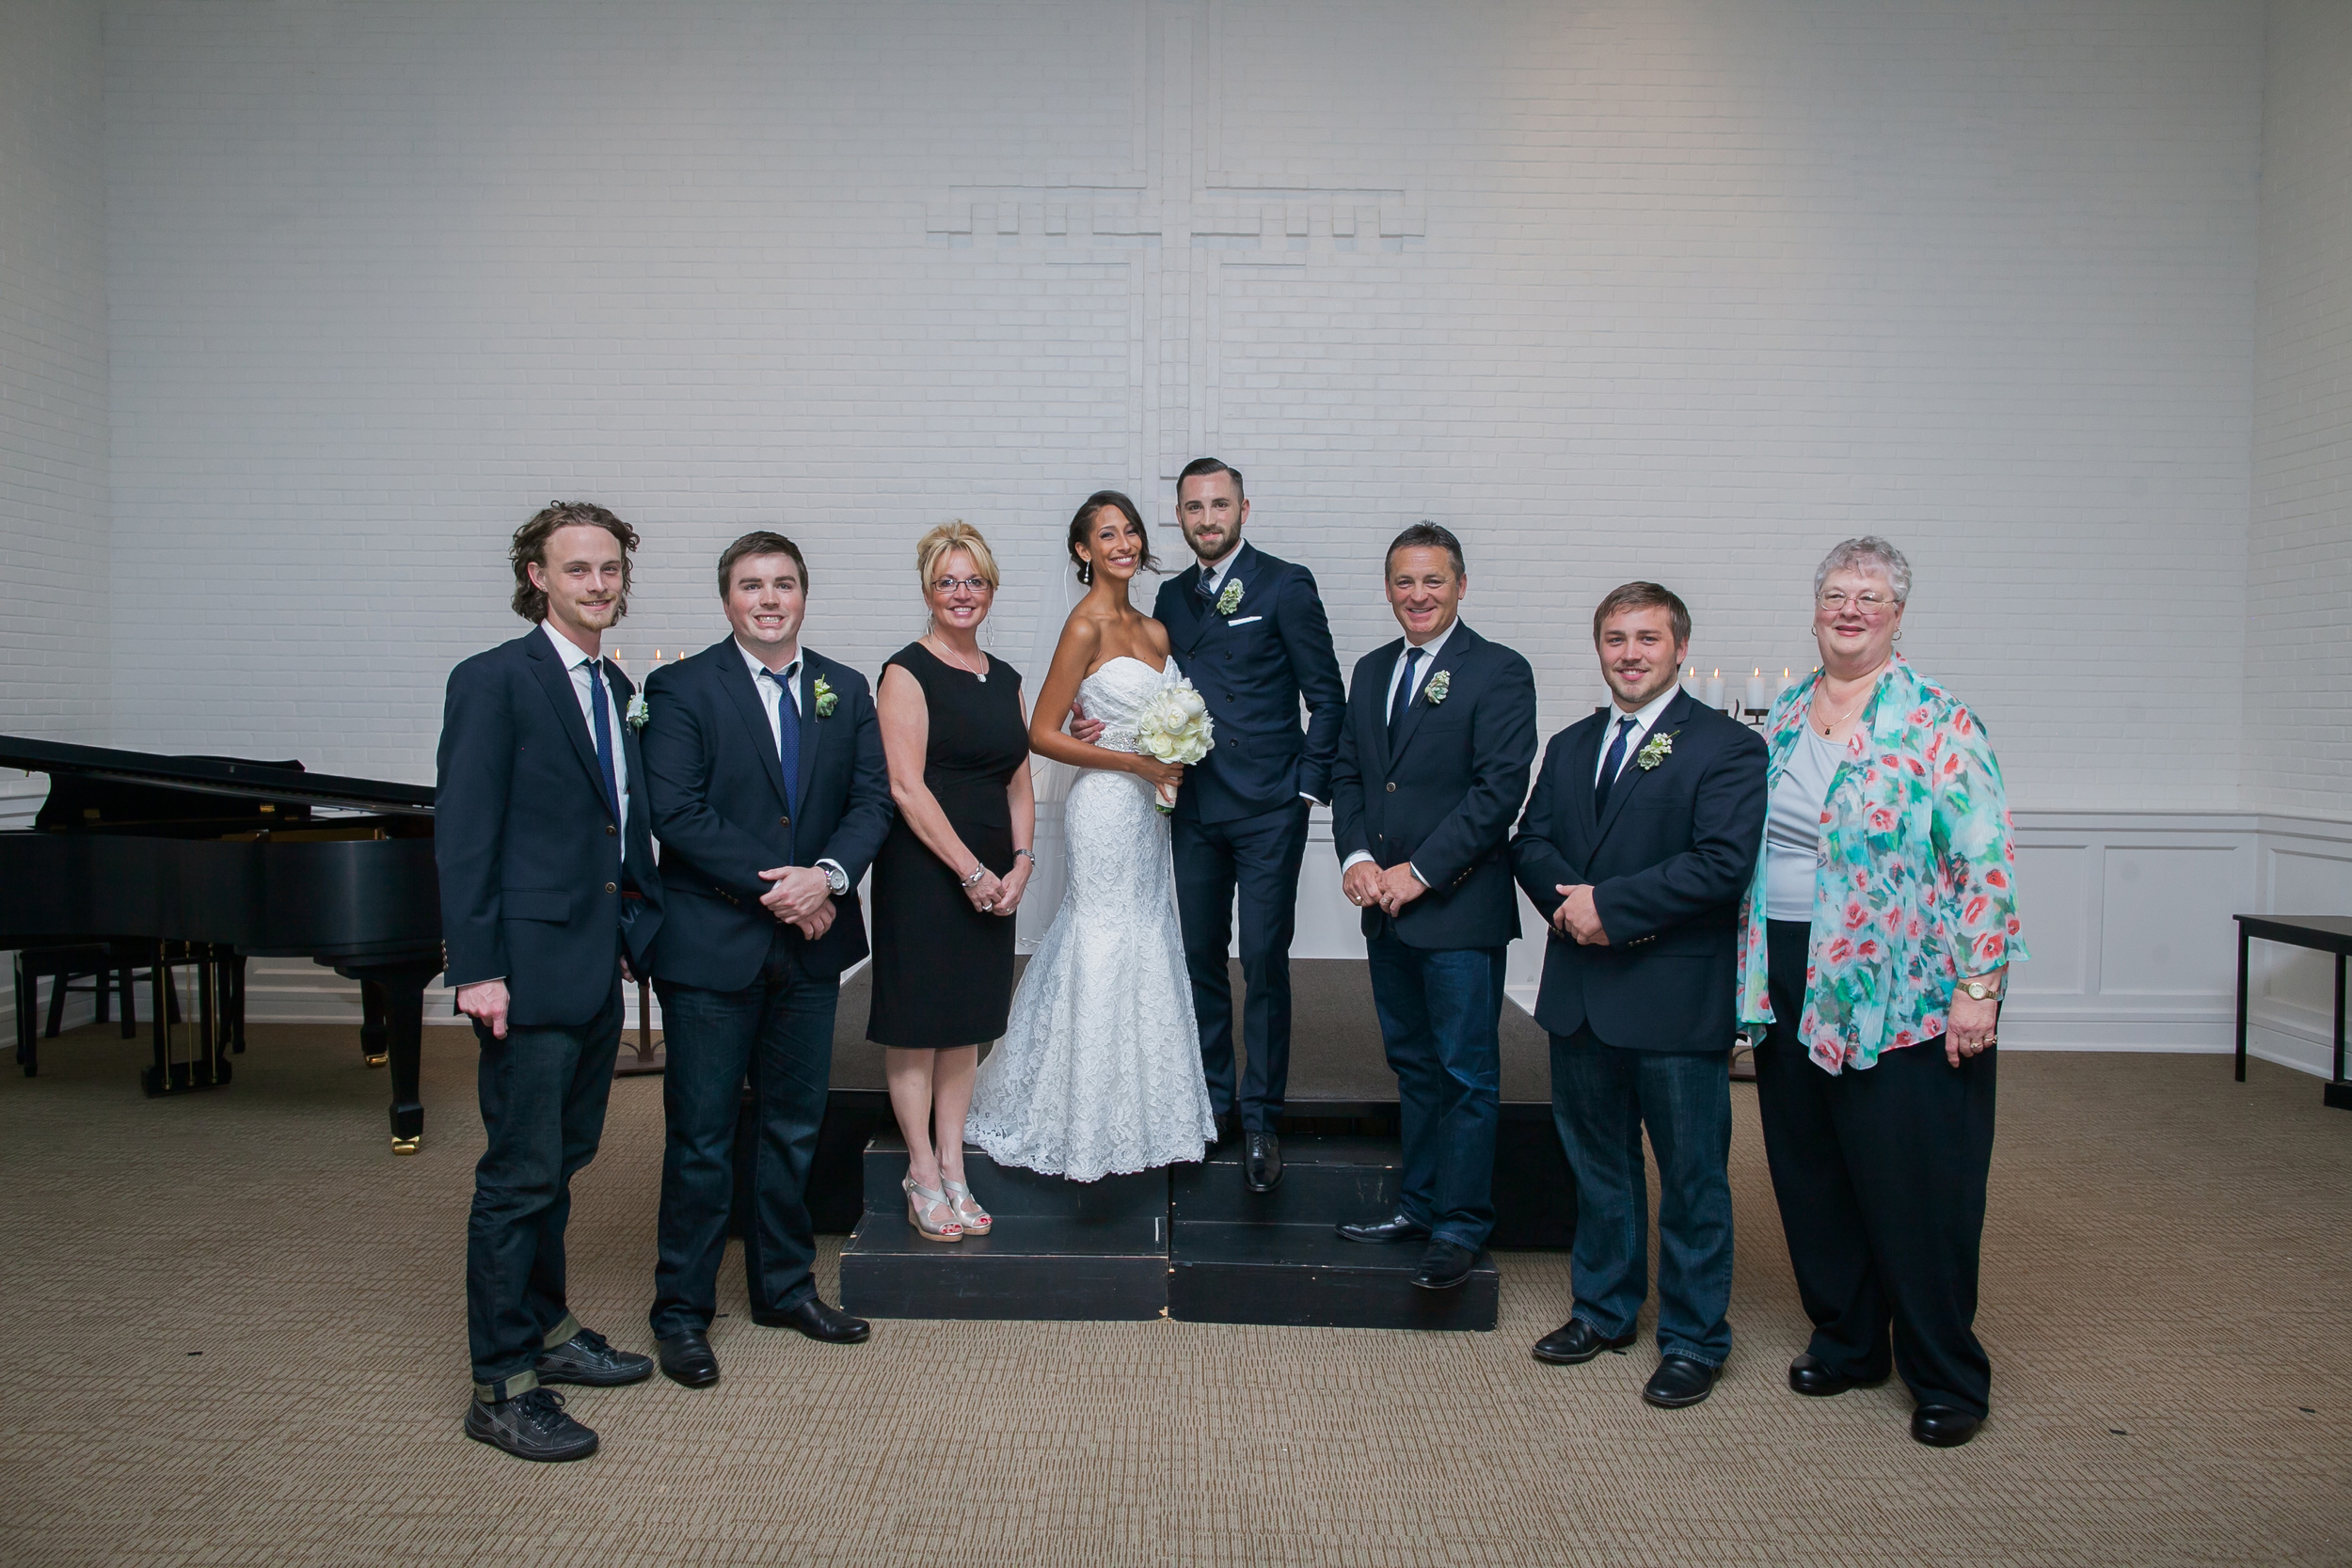 My family at our wedding.